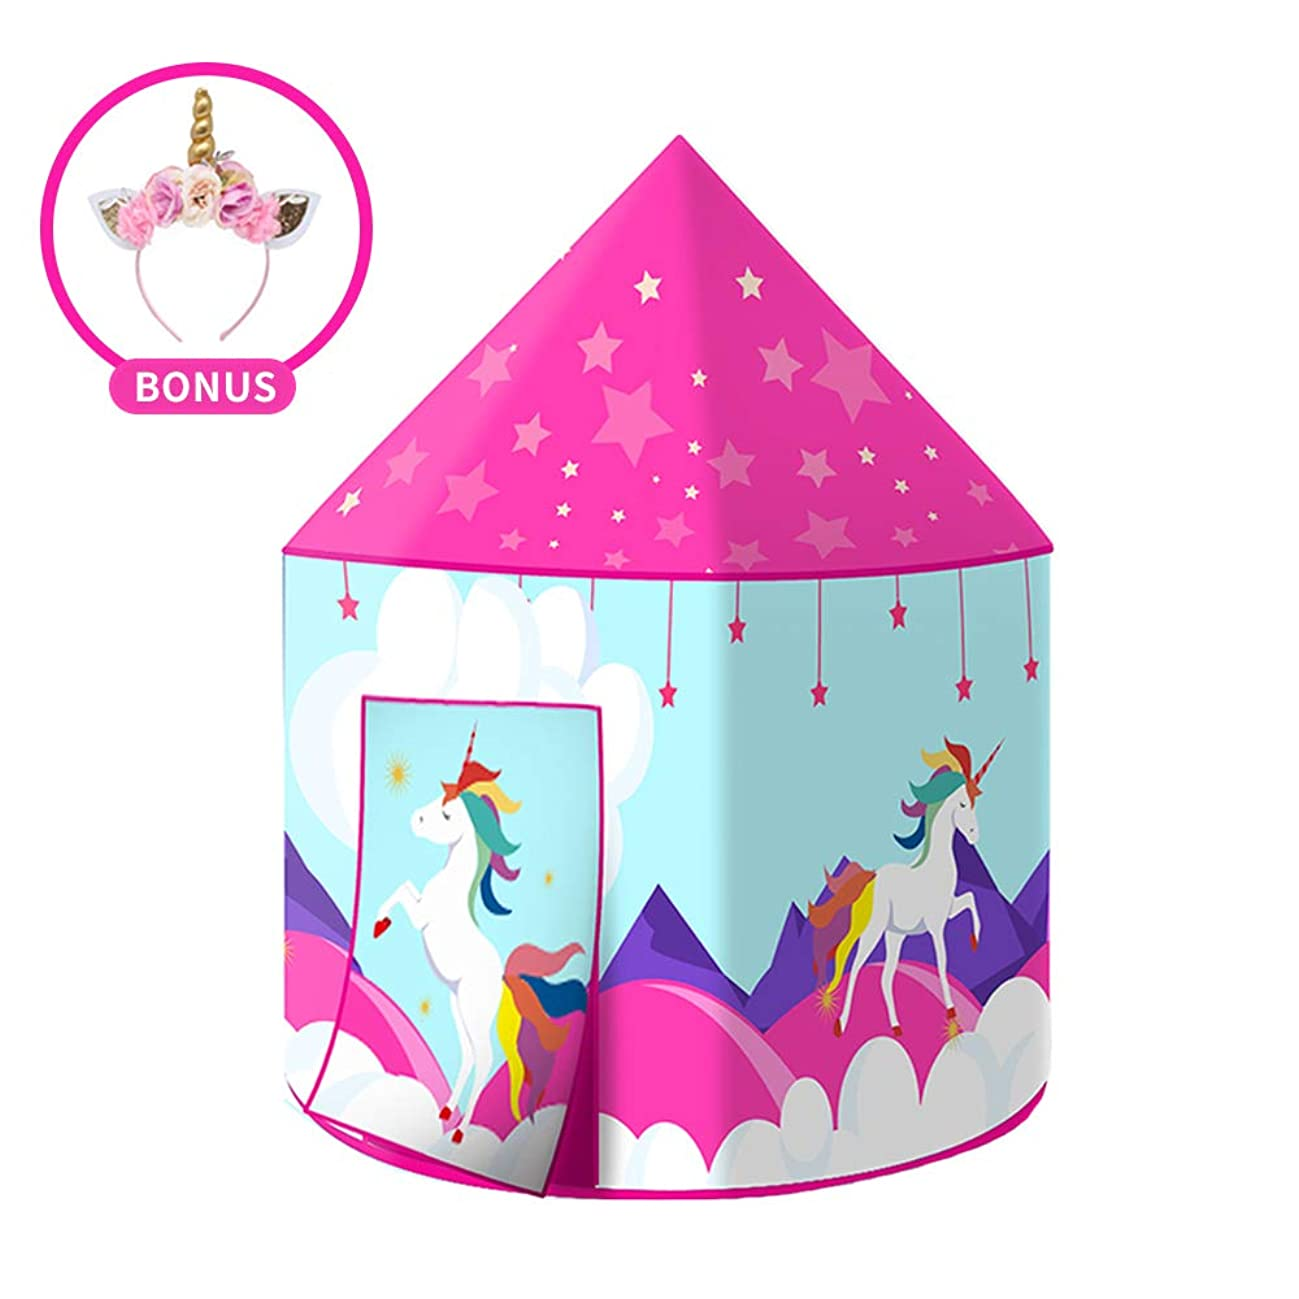 Wonder Space Princess Unicorn Play Tent, Fairy Unicorn Pop Up Playhouse for Children, Girl's Indoor & Outdoor Dream Party Castle, Comes with Cute Unicorn Headband & Portable Carrying Case